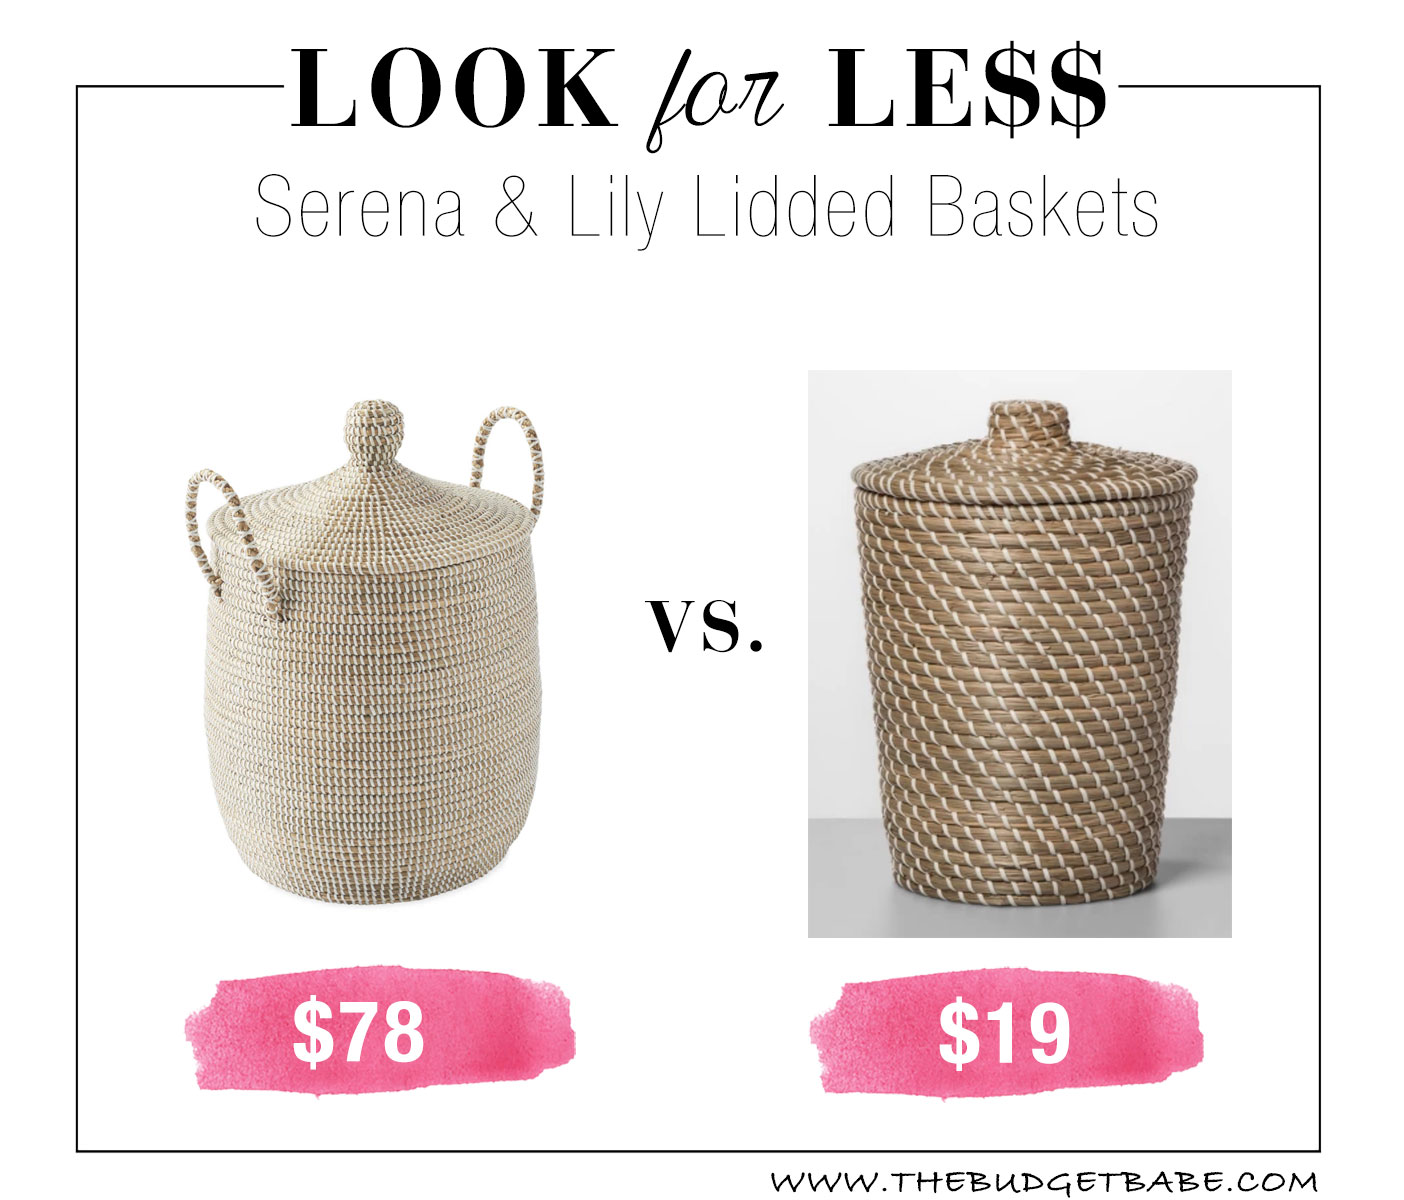 Serena & Lily baskets are so pretty